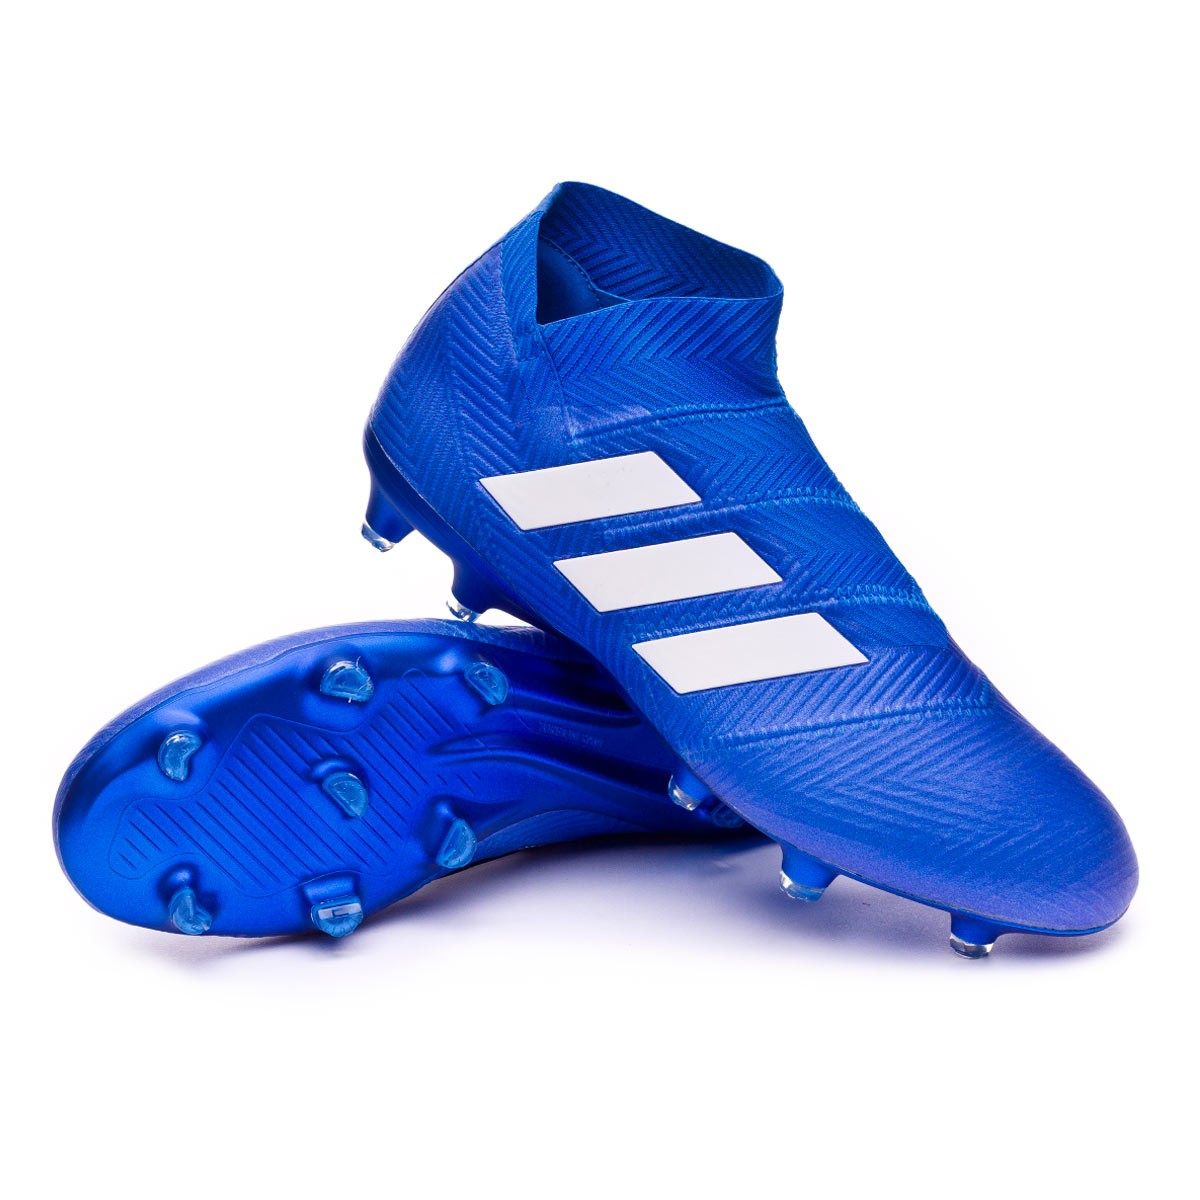 Blue 18Fg Football Bota Nemeziz White thCsQdxr